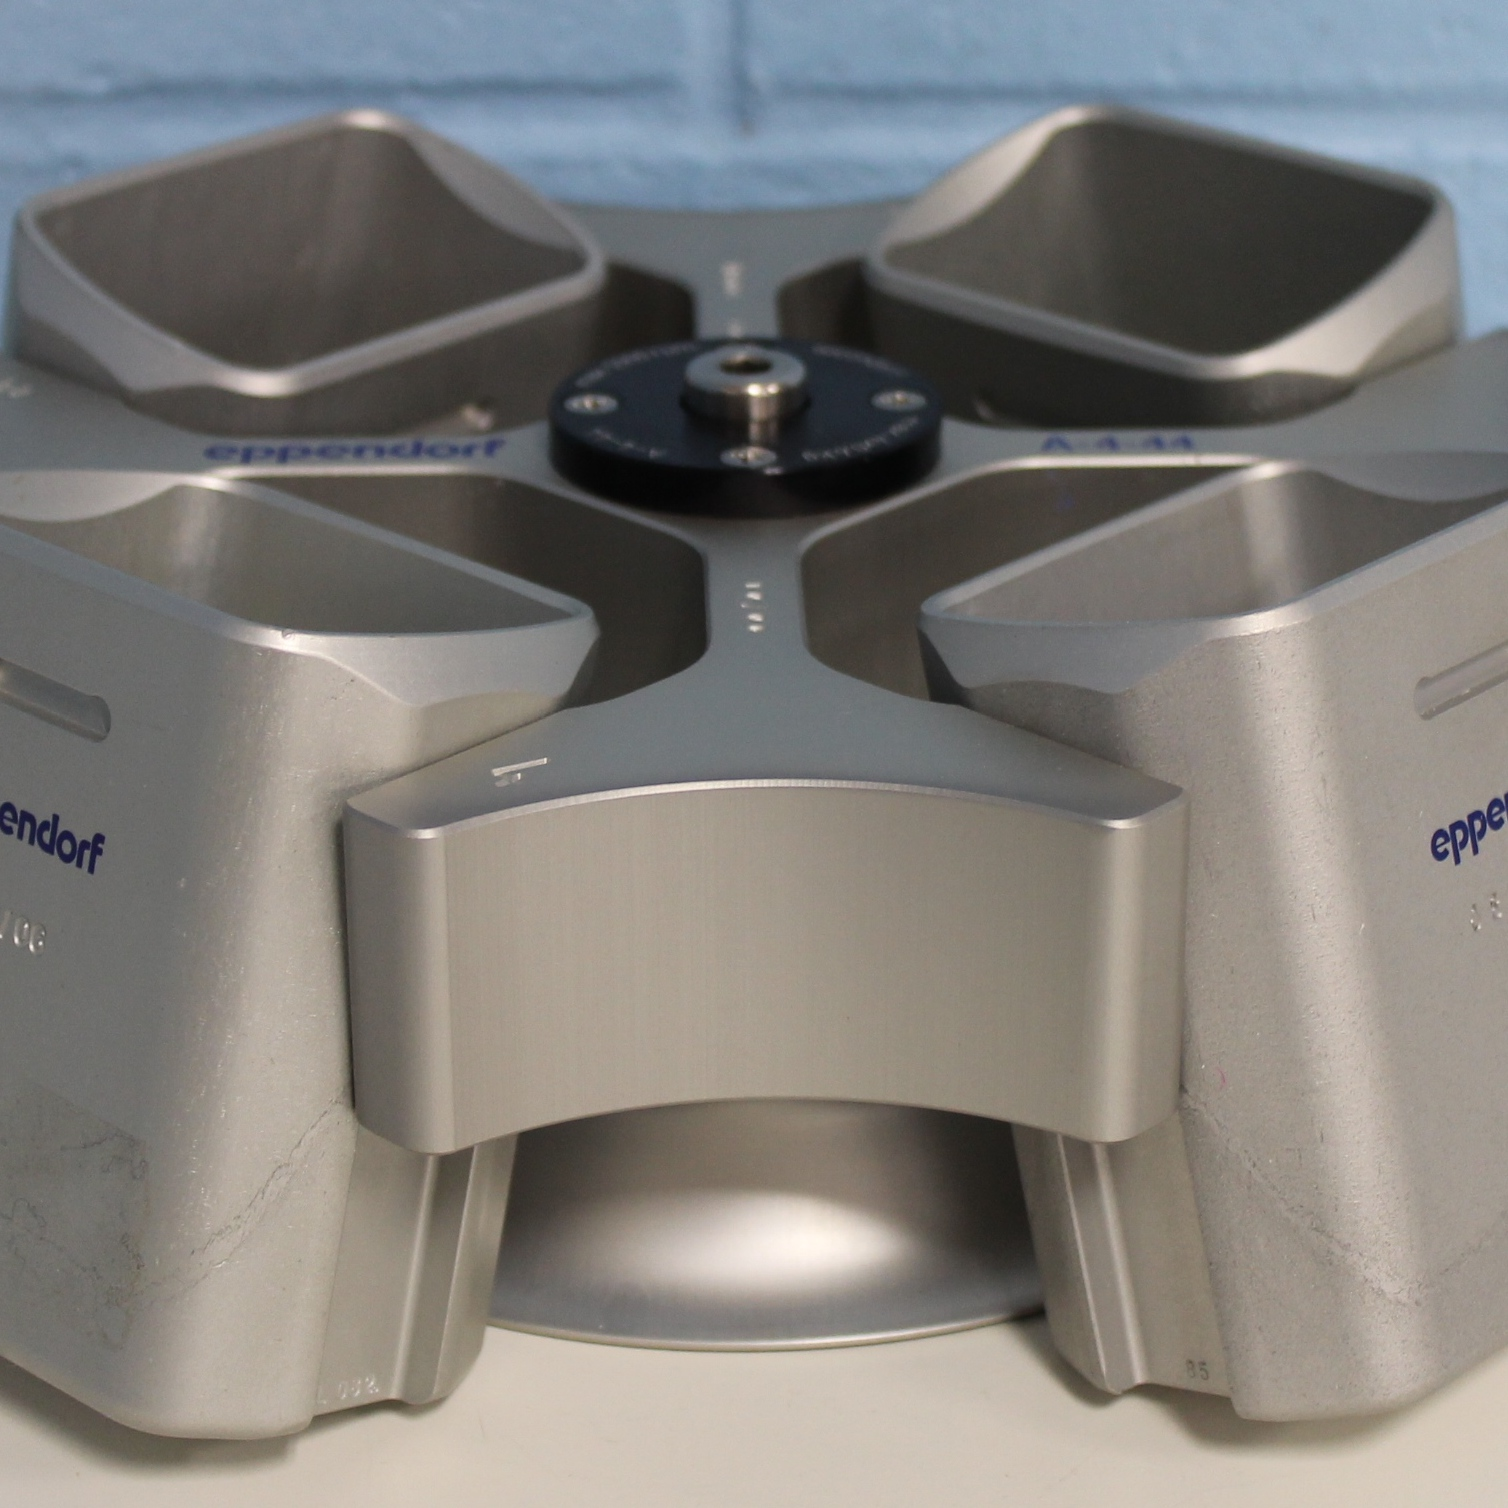 Eppendorf A-4-44 Swing-bucket Rotor with Buckets Image